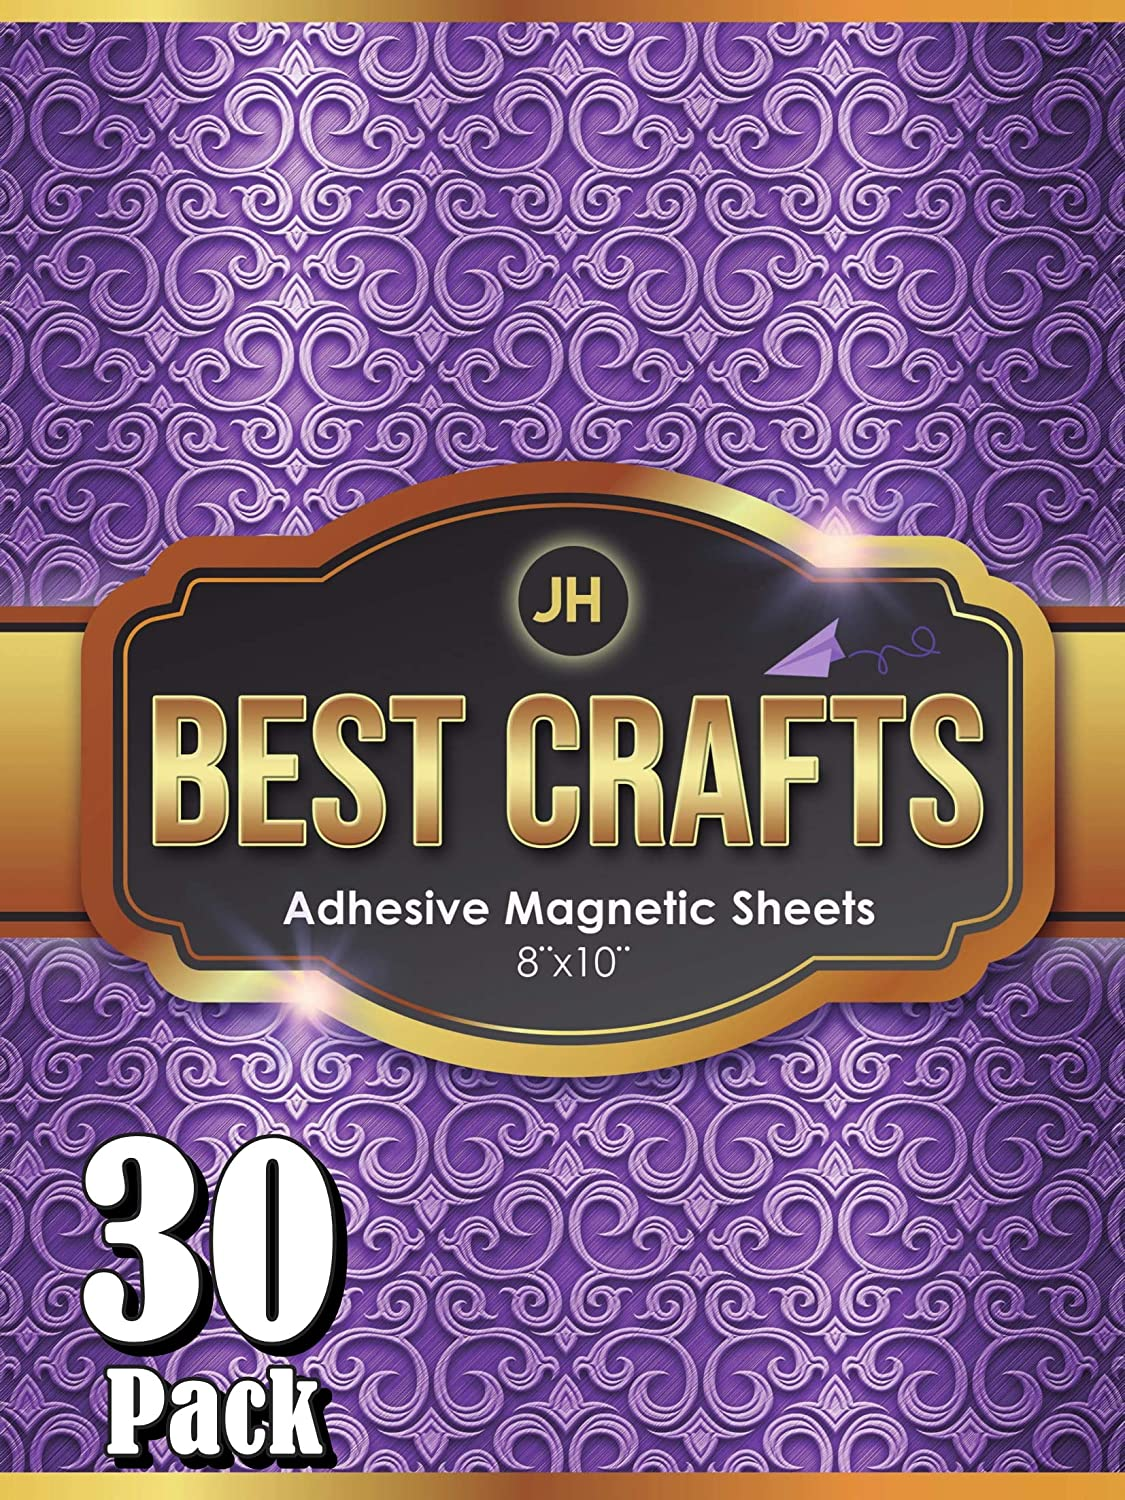 Pack of 30 Flexible Magnet with Adhesive Backing 8 x 10 Inch Magnets for Crafts and Pictures JH Best Crafts Adhesive Magnetic Sheets Cut to Any Size